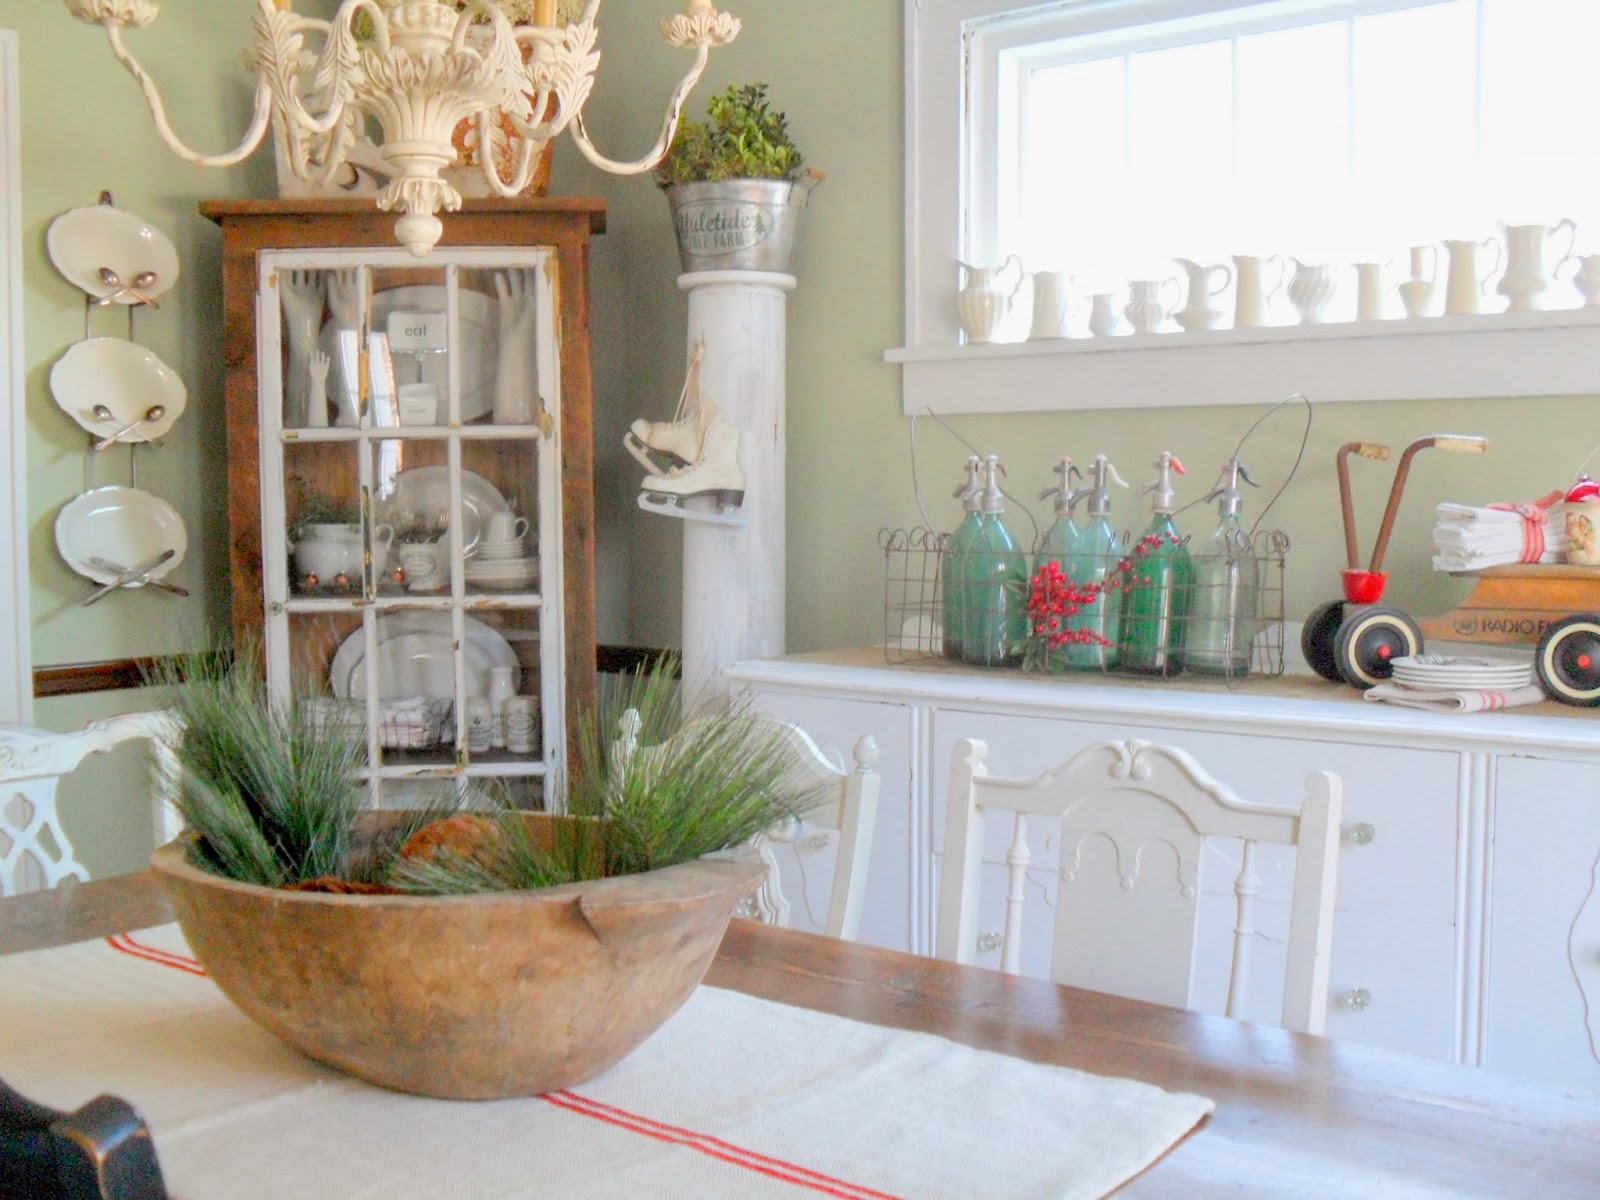 12 Rustic Dining Room Ideas: Must Love Junk: Creating Christmas-My Rustic Dining Room